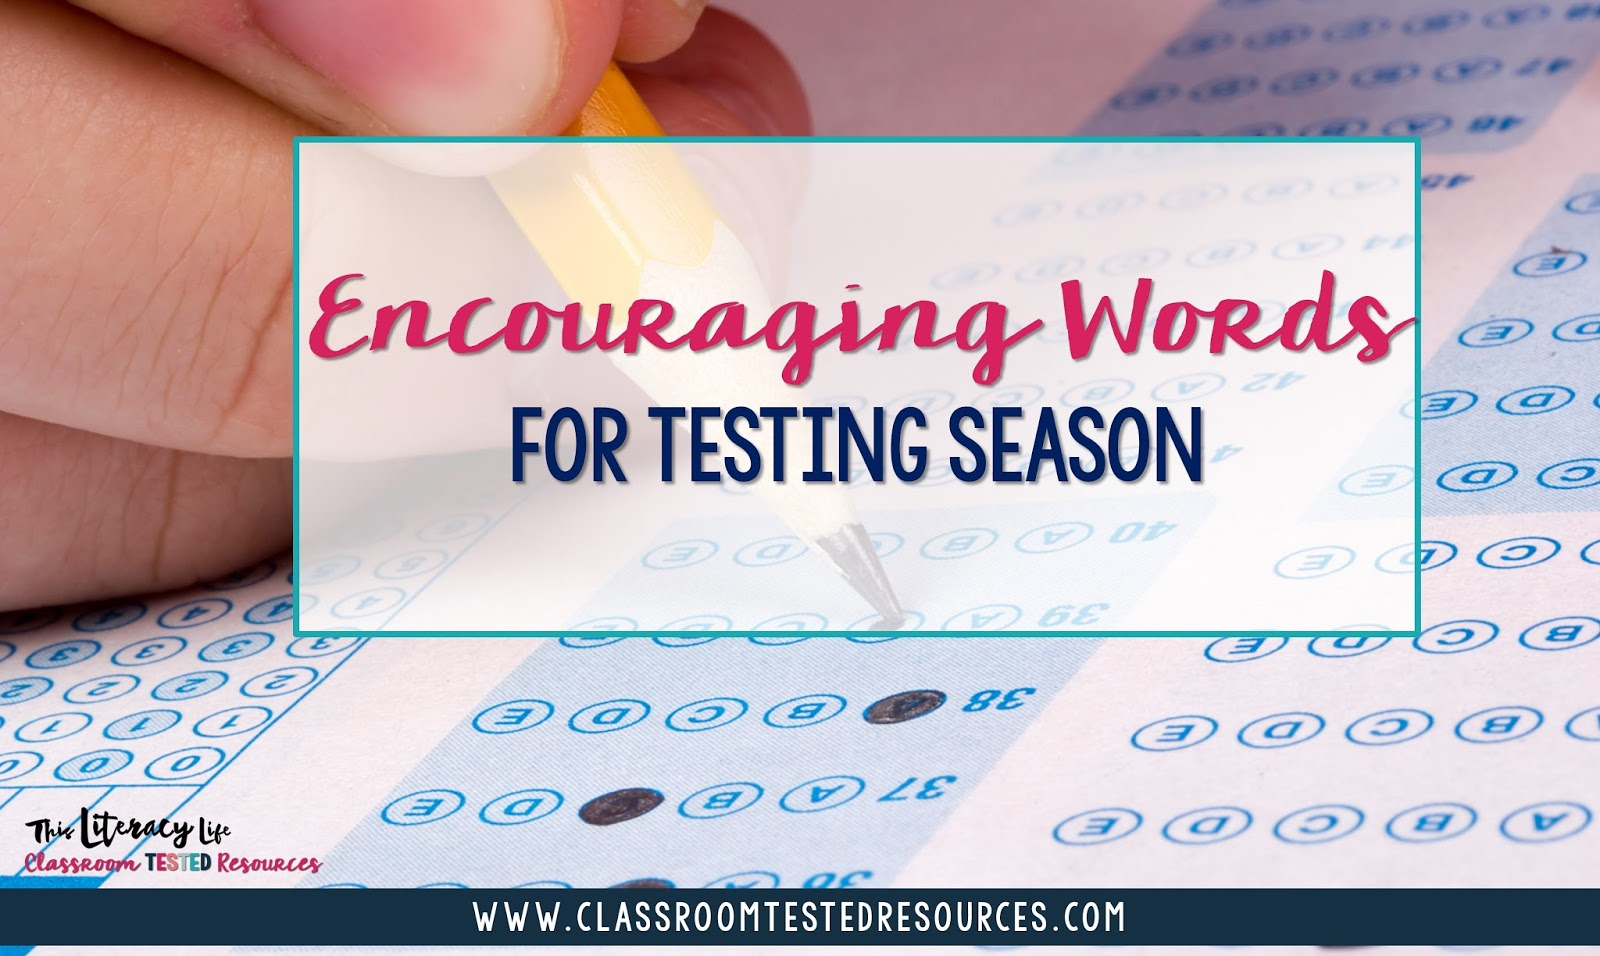 Testing can be difficult for so many, but encouraging words can help us all make it through this tough time!